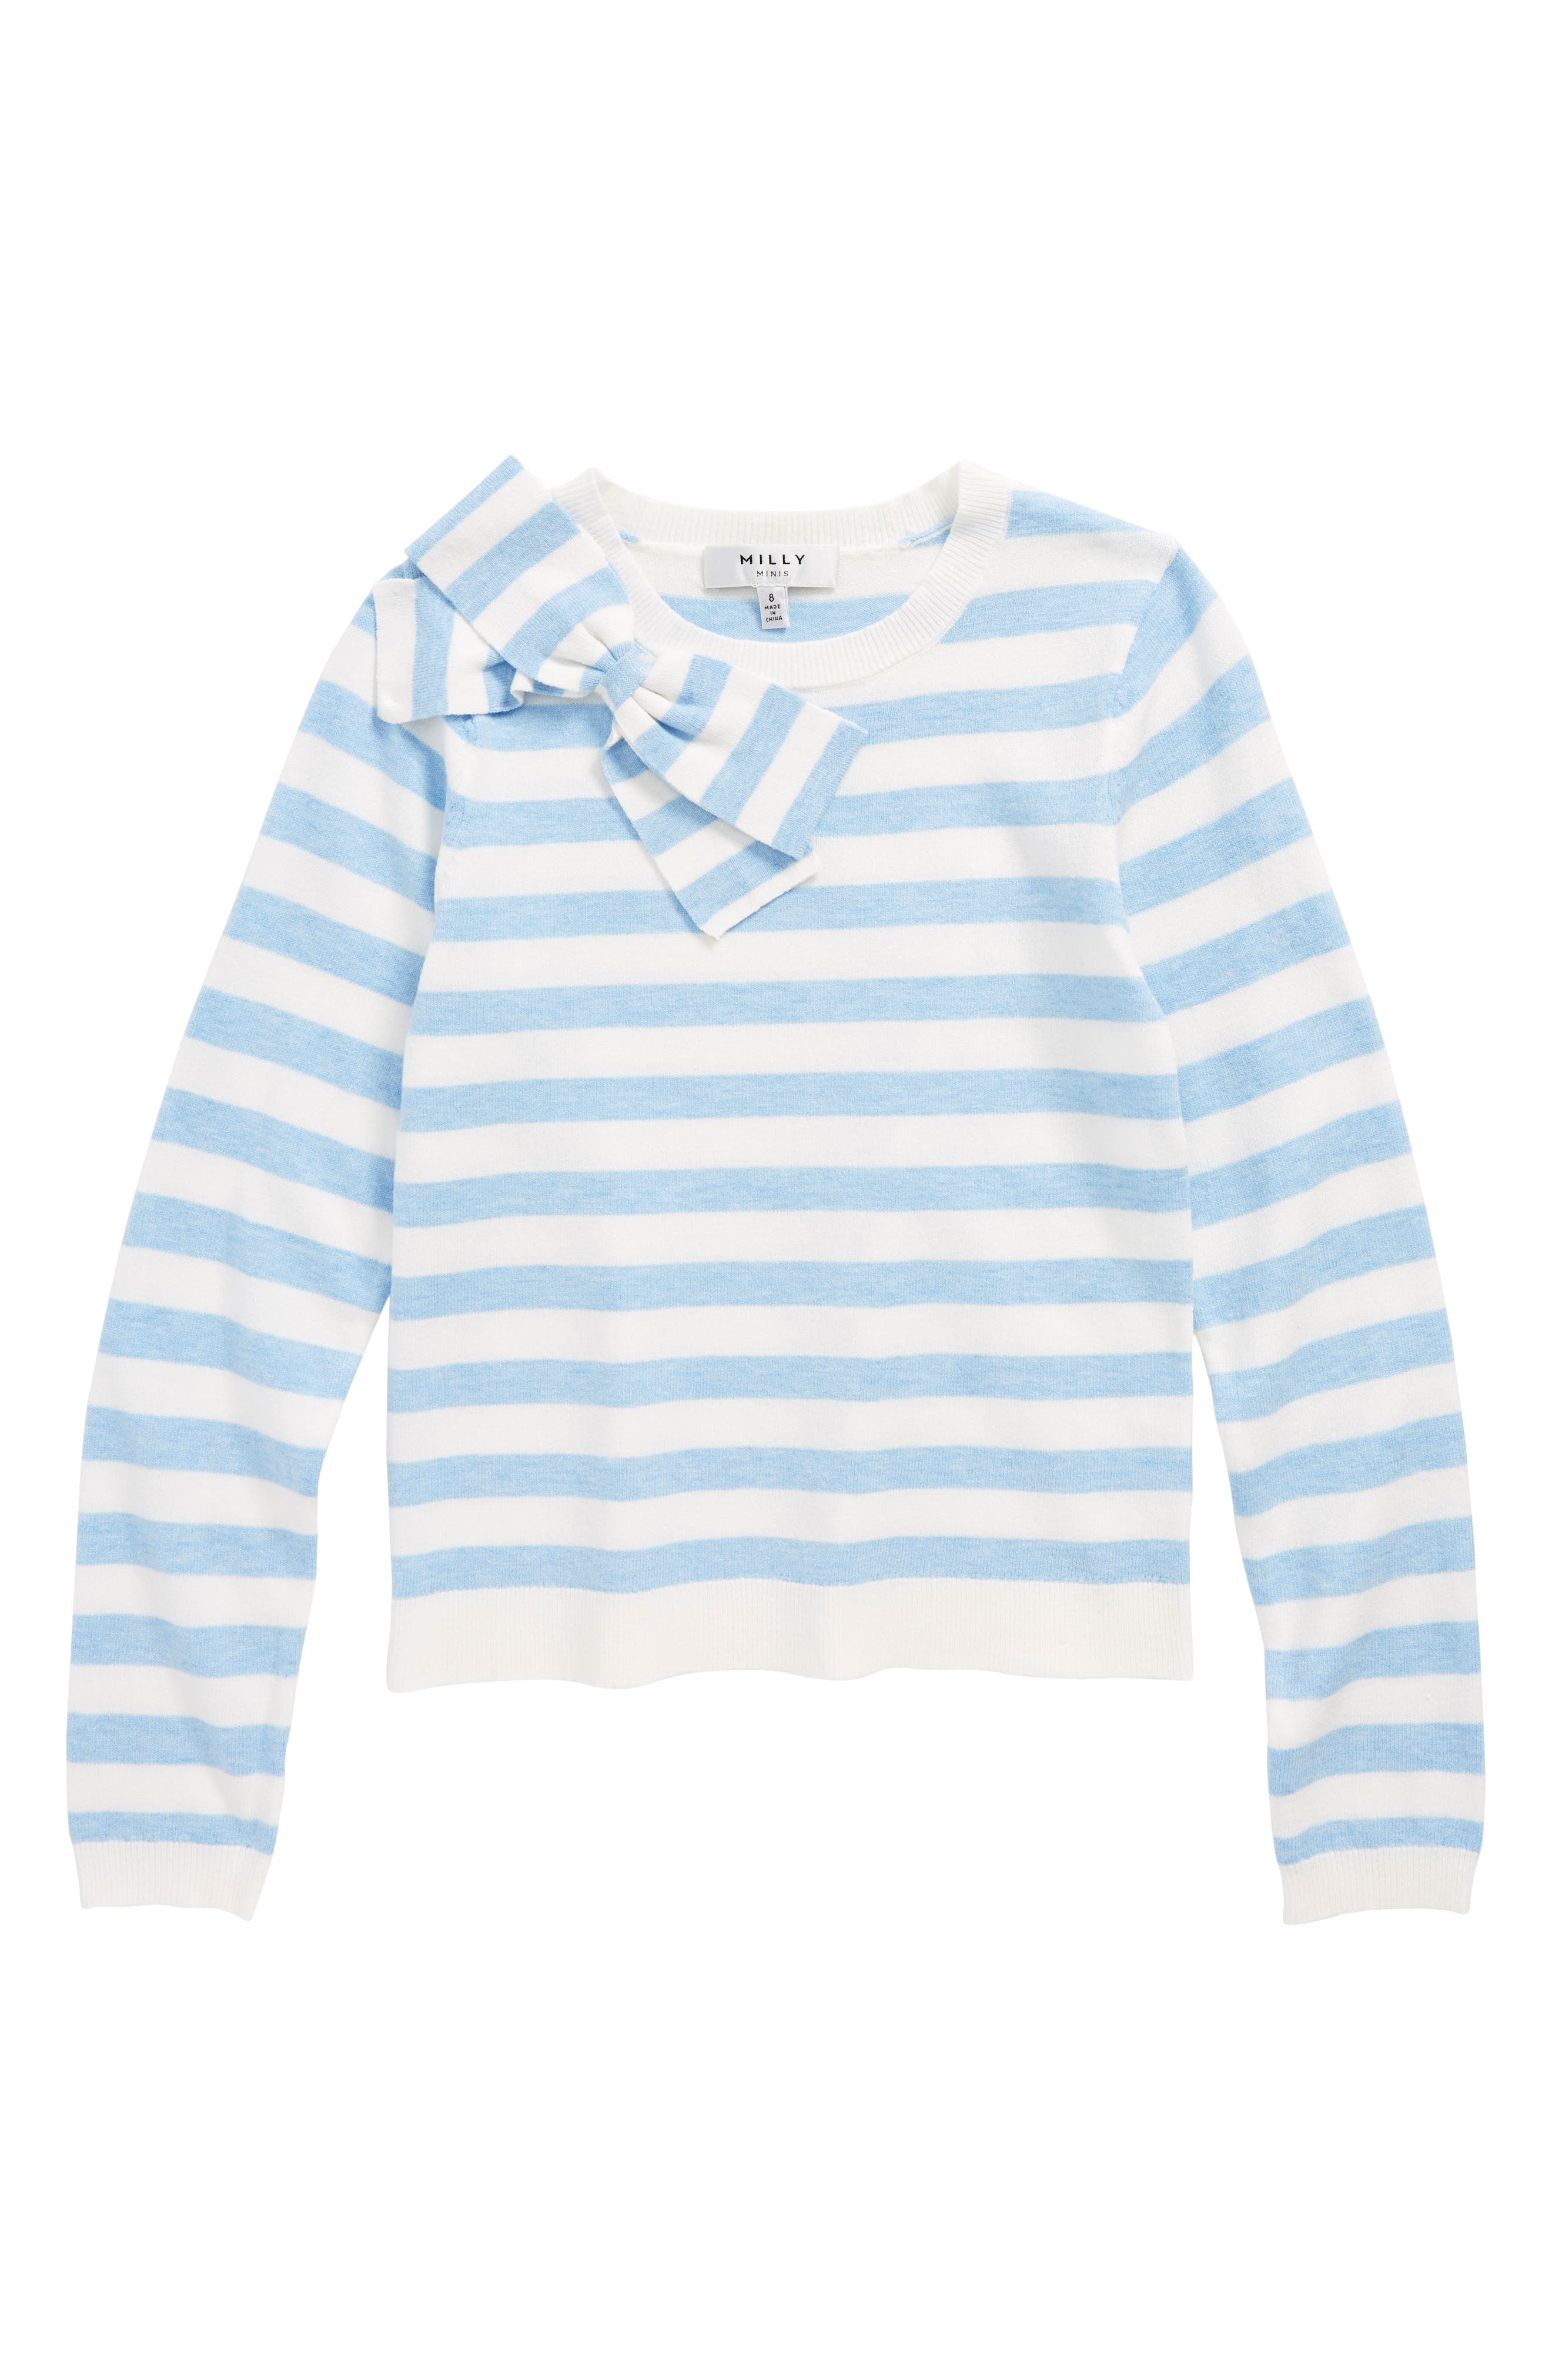 Alternate Image 1 Selected - Milly Minis Bow Sweater (Big Girls)